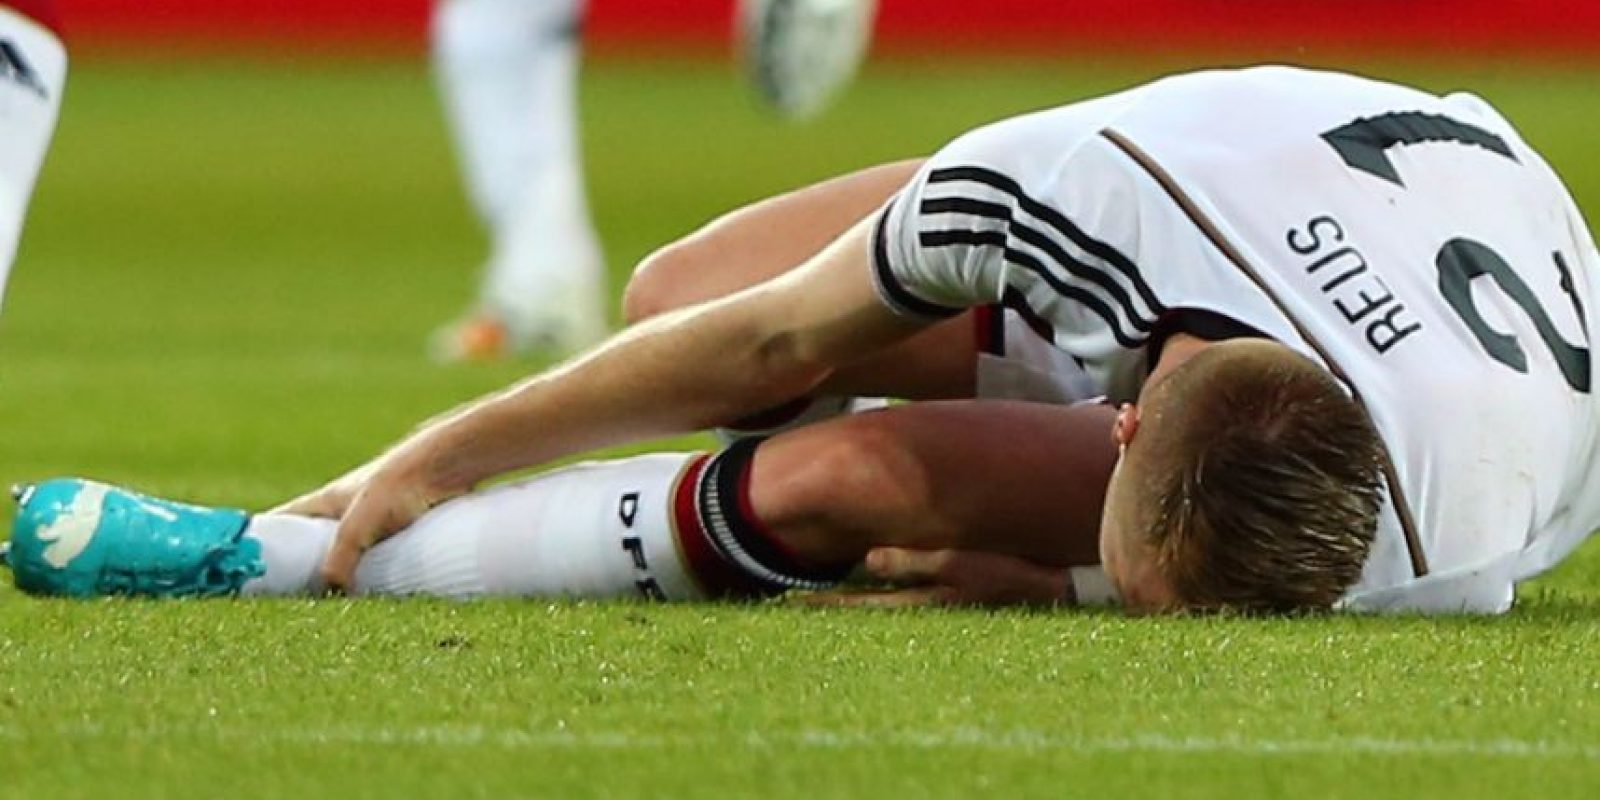 Marco Reus – Alemania. 6 de junio de 2014. Foto: Getty Images